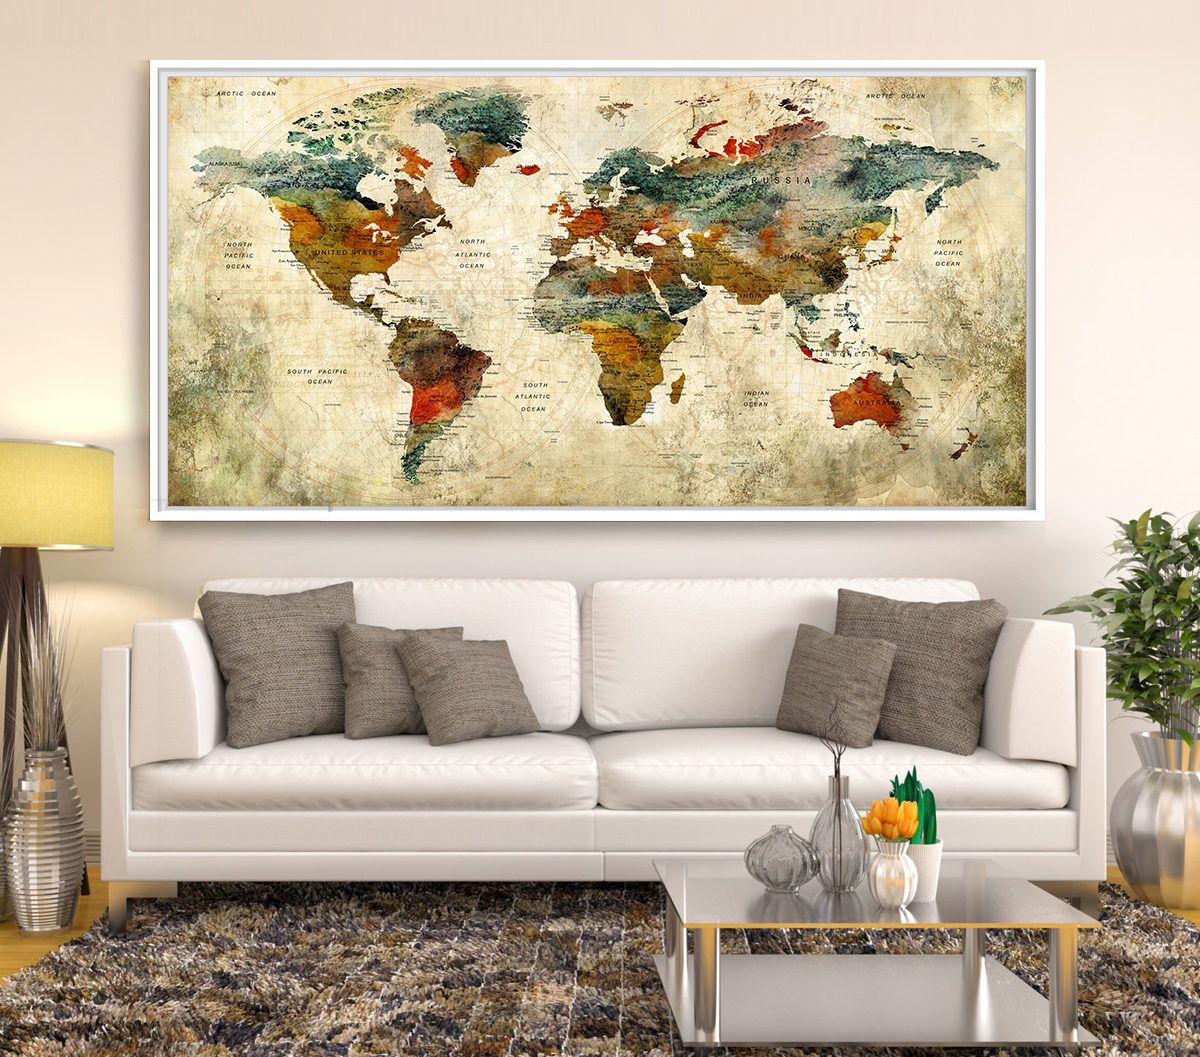 World map push pin art print triptych abstract wall art watercolor world map push pin art print triptych abstract wall art watercolor world map art print extra large world map print world map art l83 by gumiabroncs Gallery